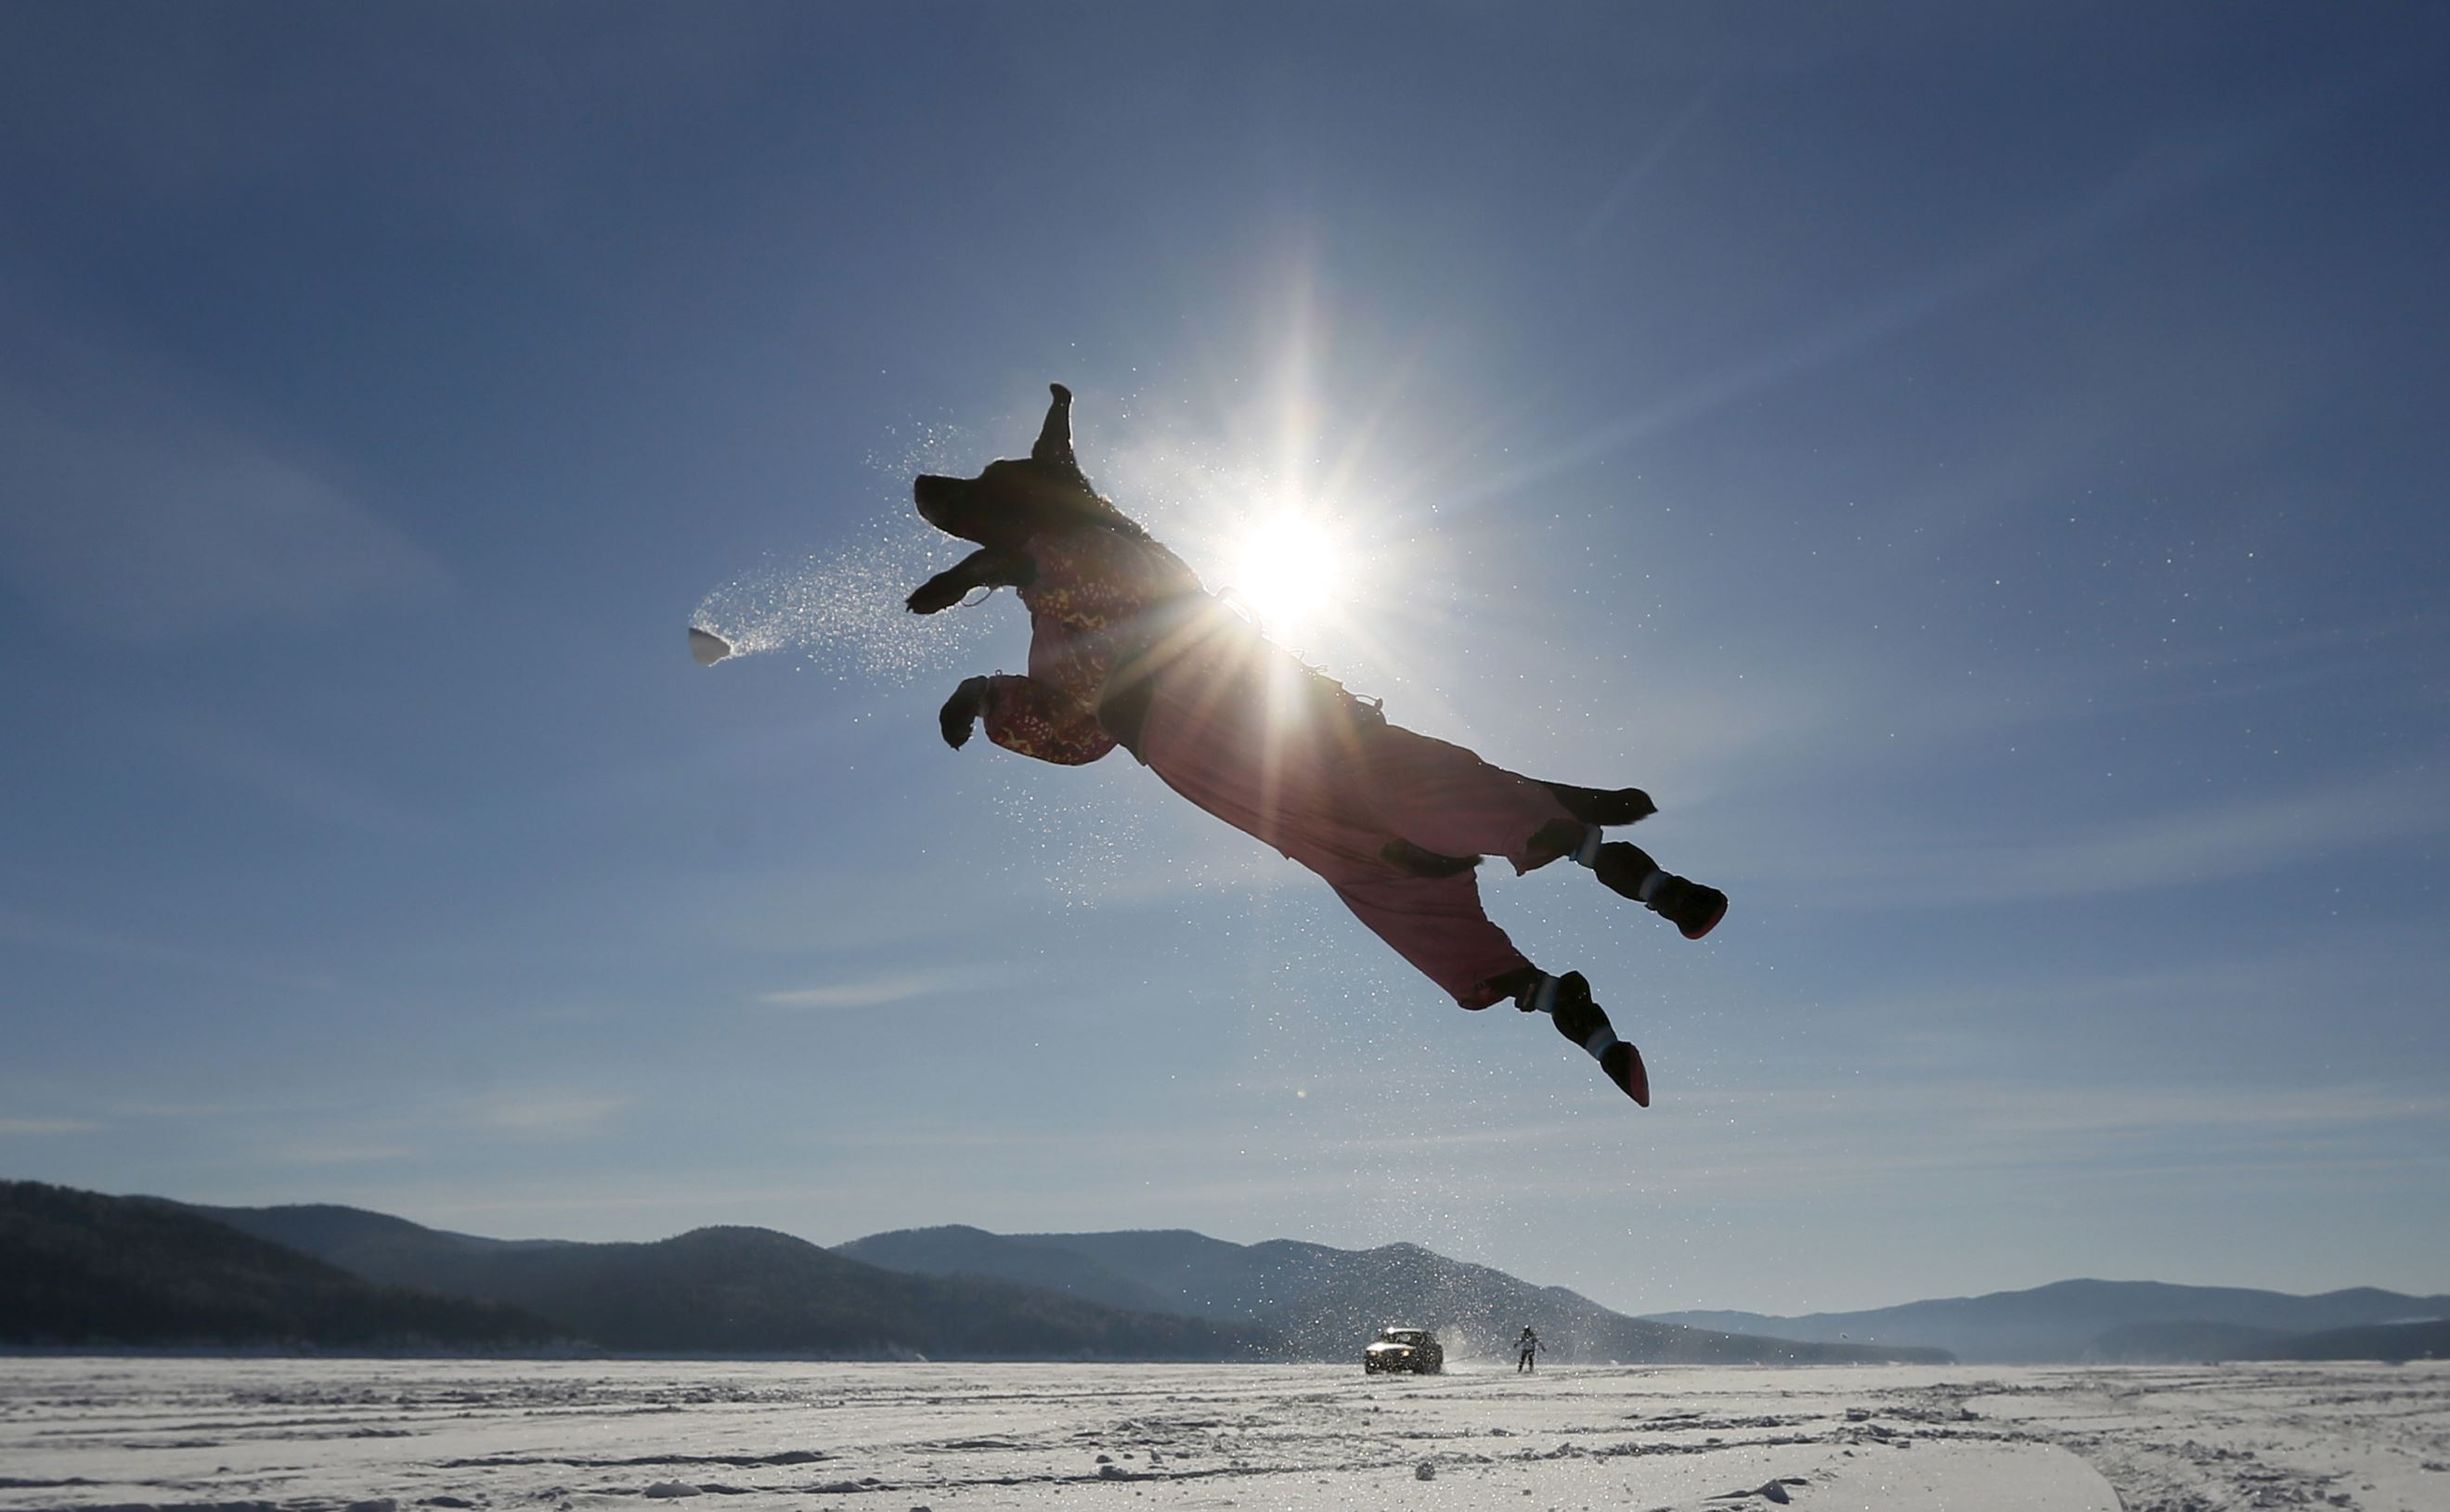 Слайд 60 из 67: A Labrador retriever jumps for a snowball while playing with its owner, with a car towing a snowboarder seen in the background, on the frozen surface of the Yenisei River, with the air temperature at about minus 20 degrees Celsius (minus 4 degrees Fahrenheit), outside Krasnoyarsk, Siberia, Russia, February 13, 2016.